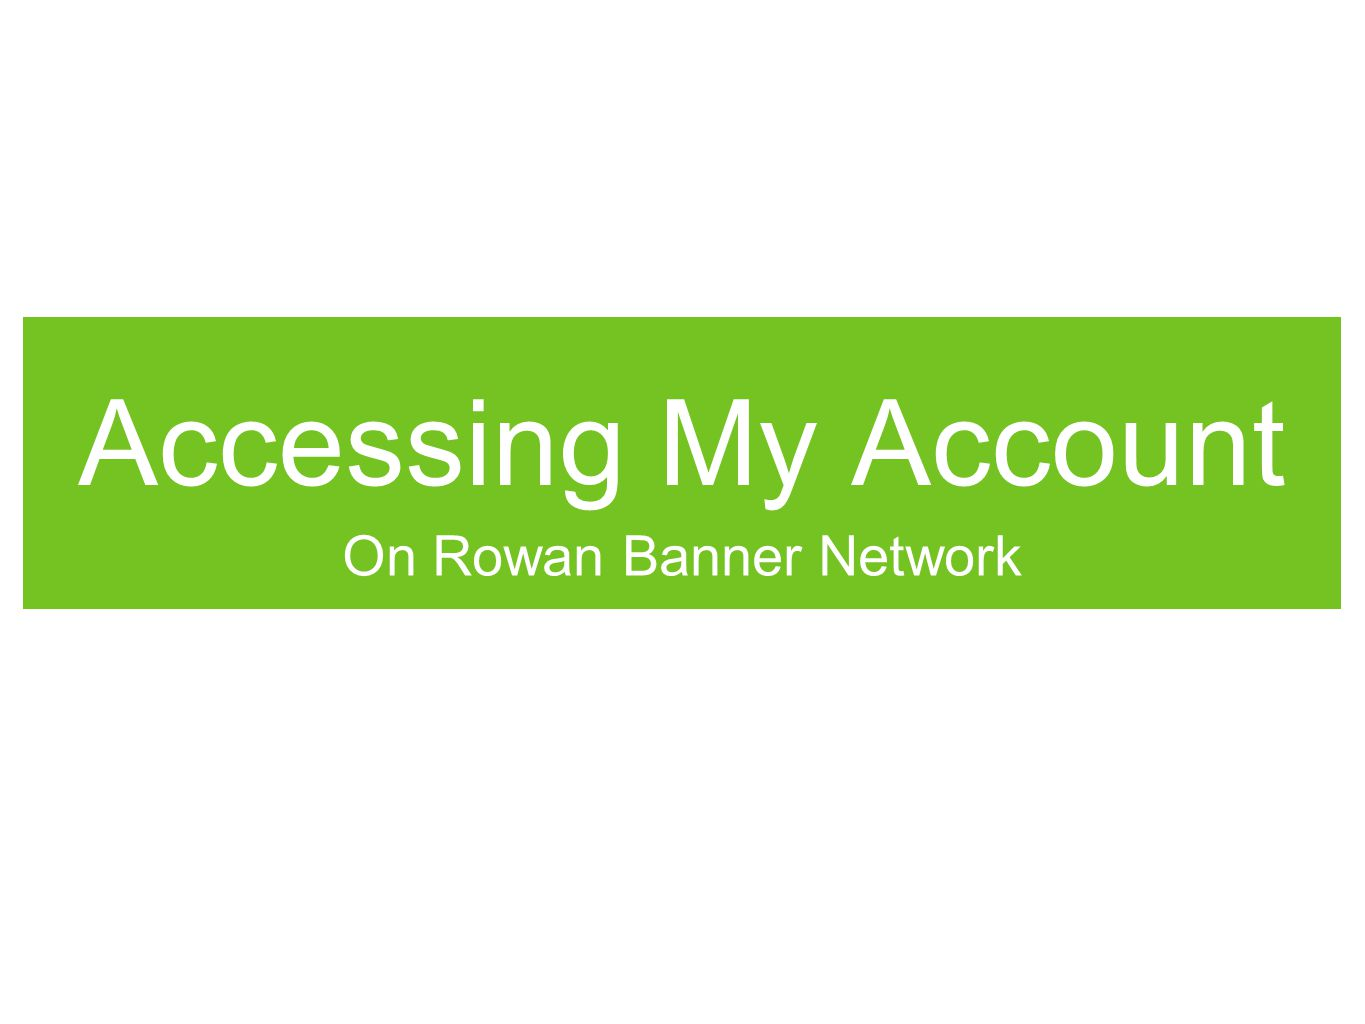 Accessing My Account On Rowan Banner Network